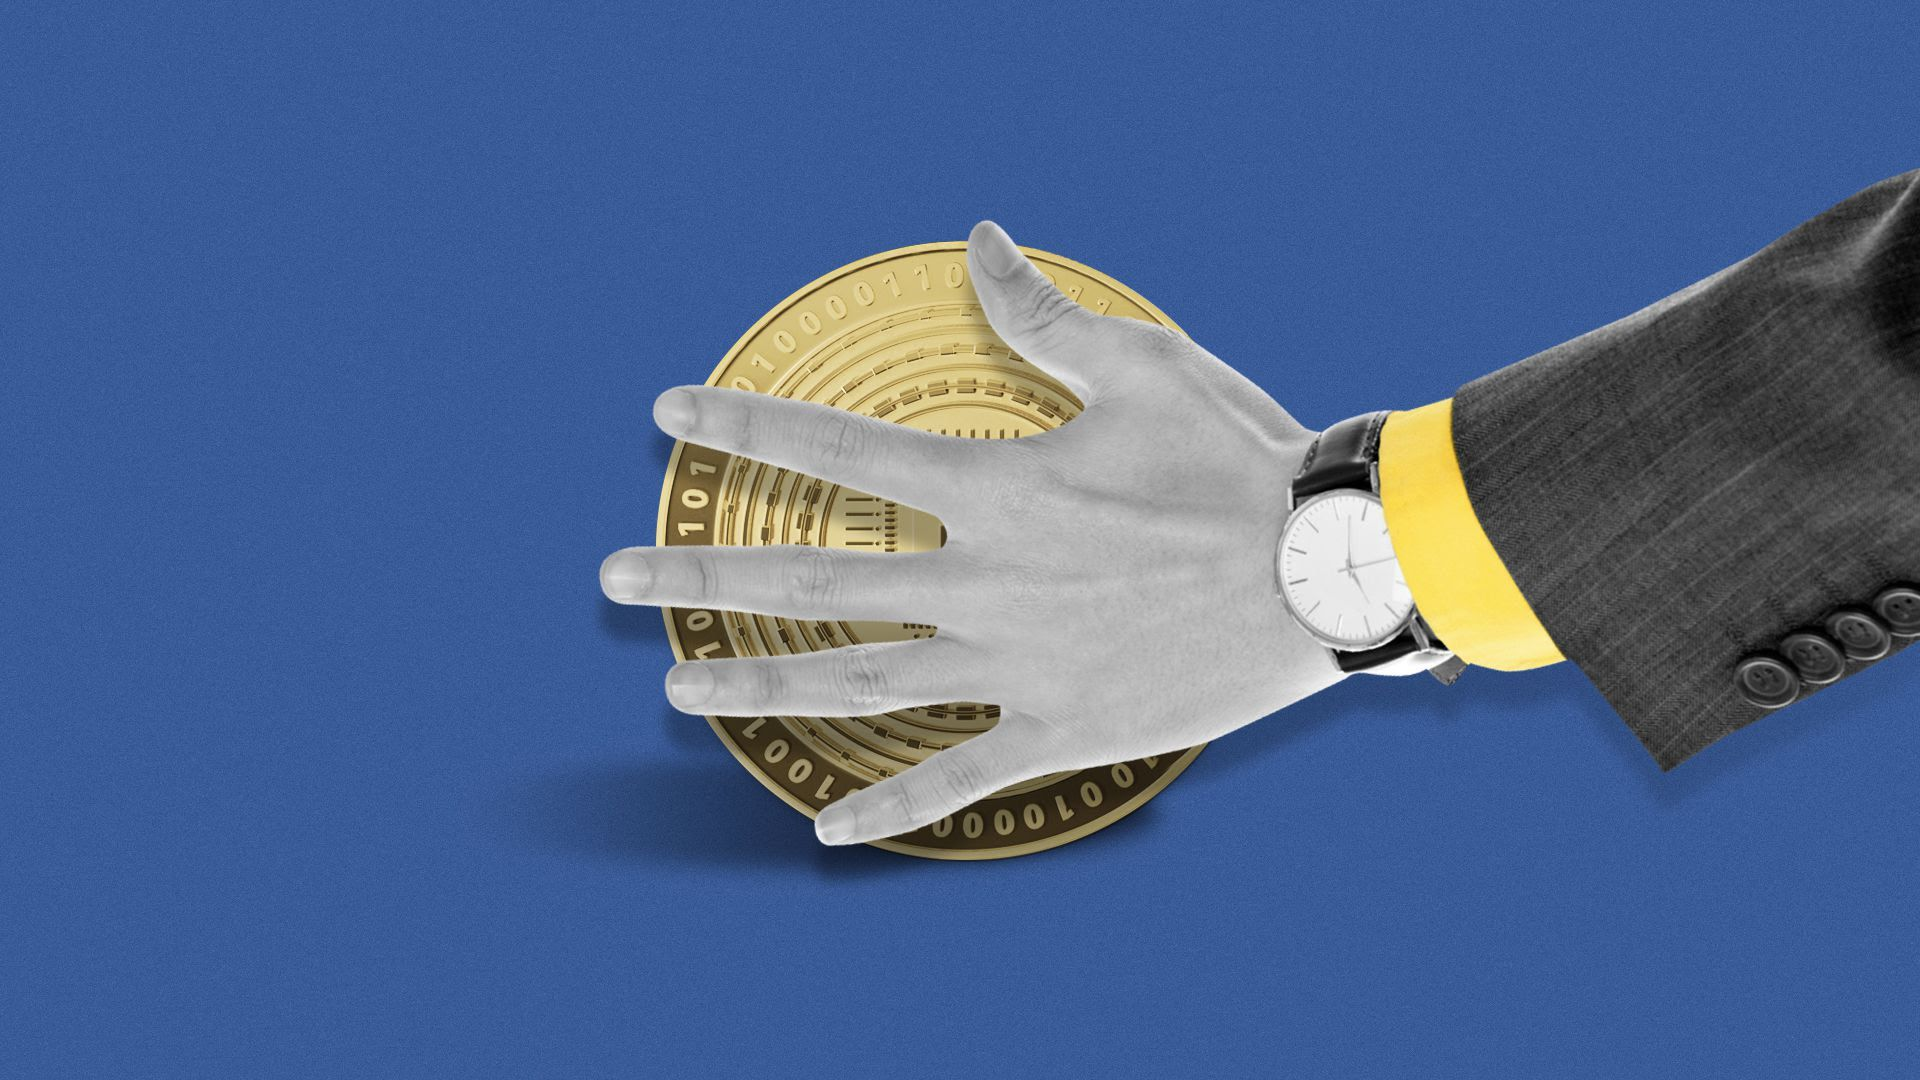 Illustration of a hand covering cryptocurrency